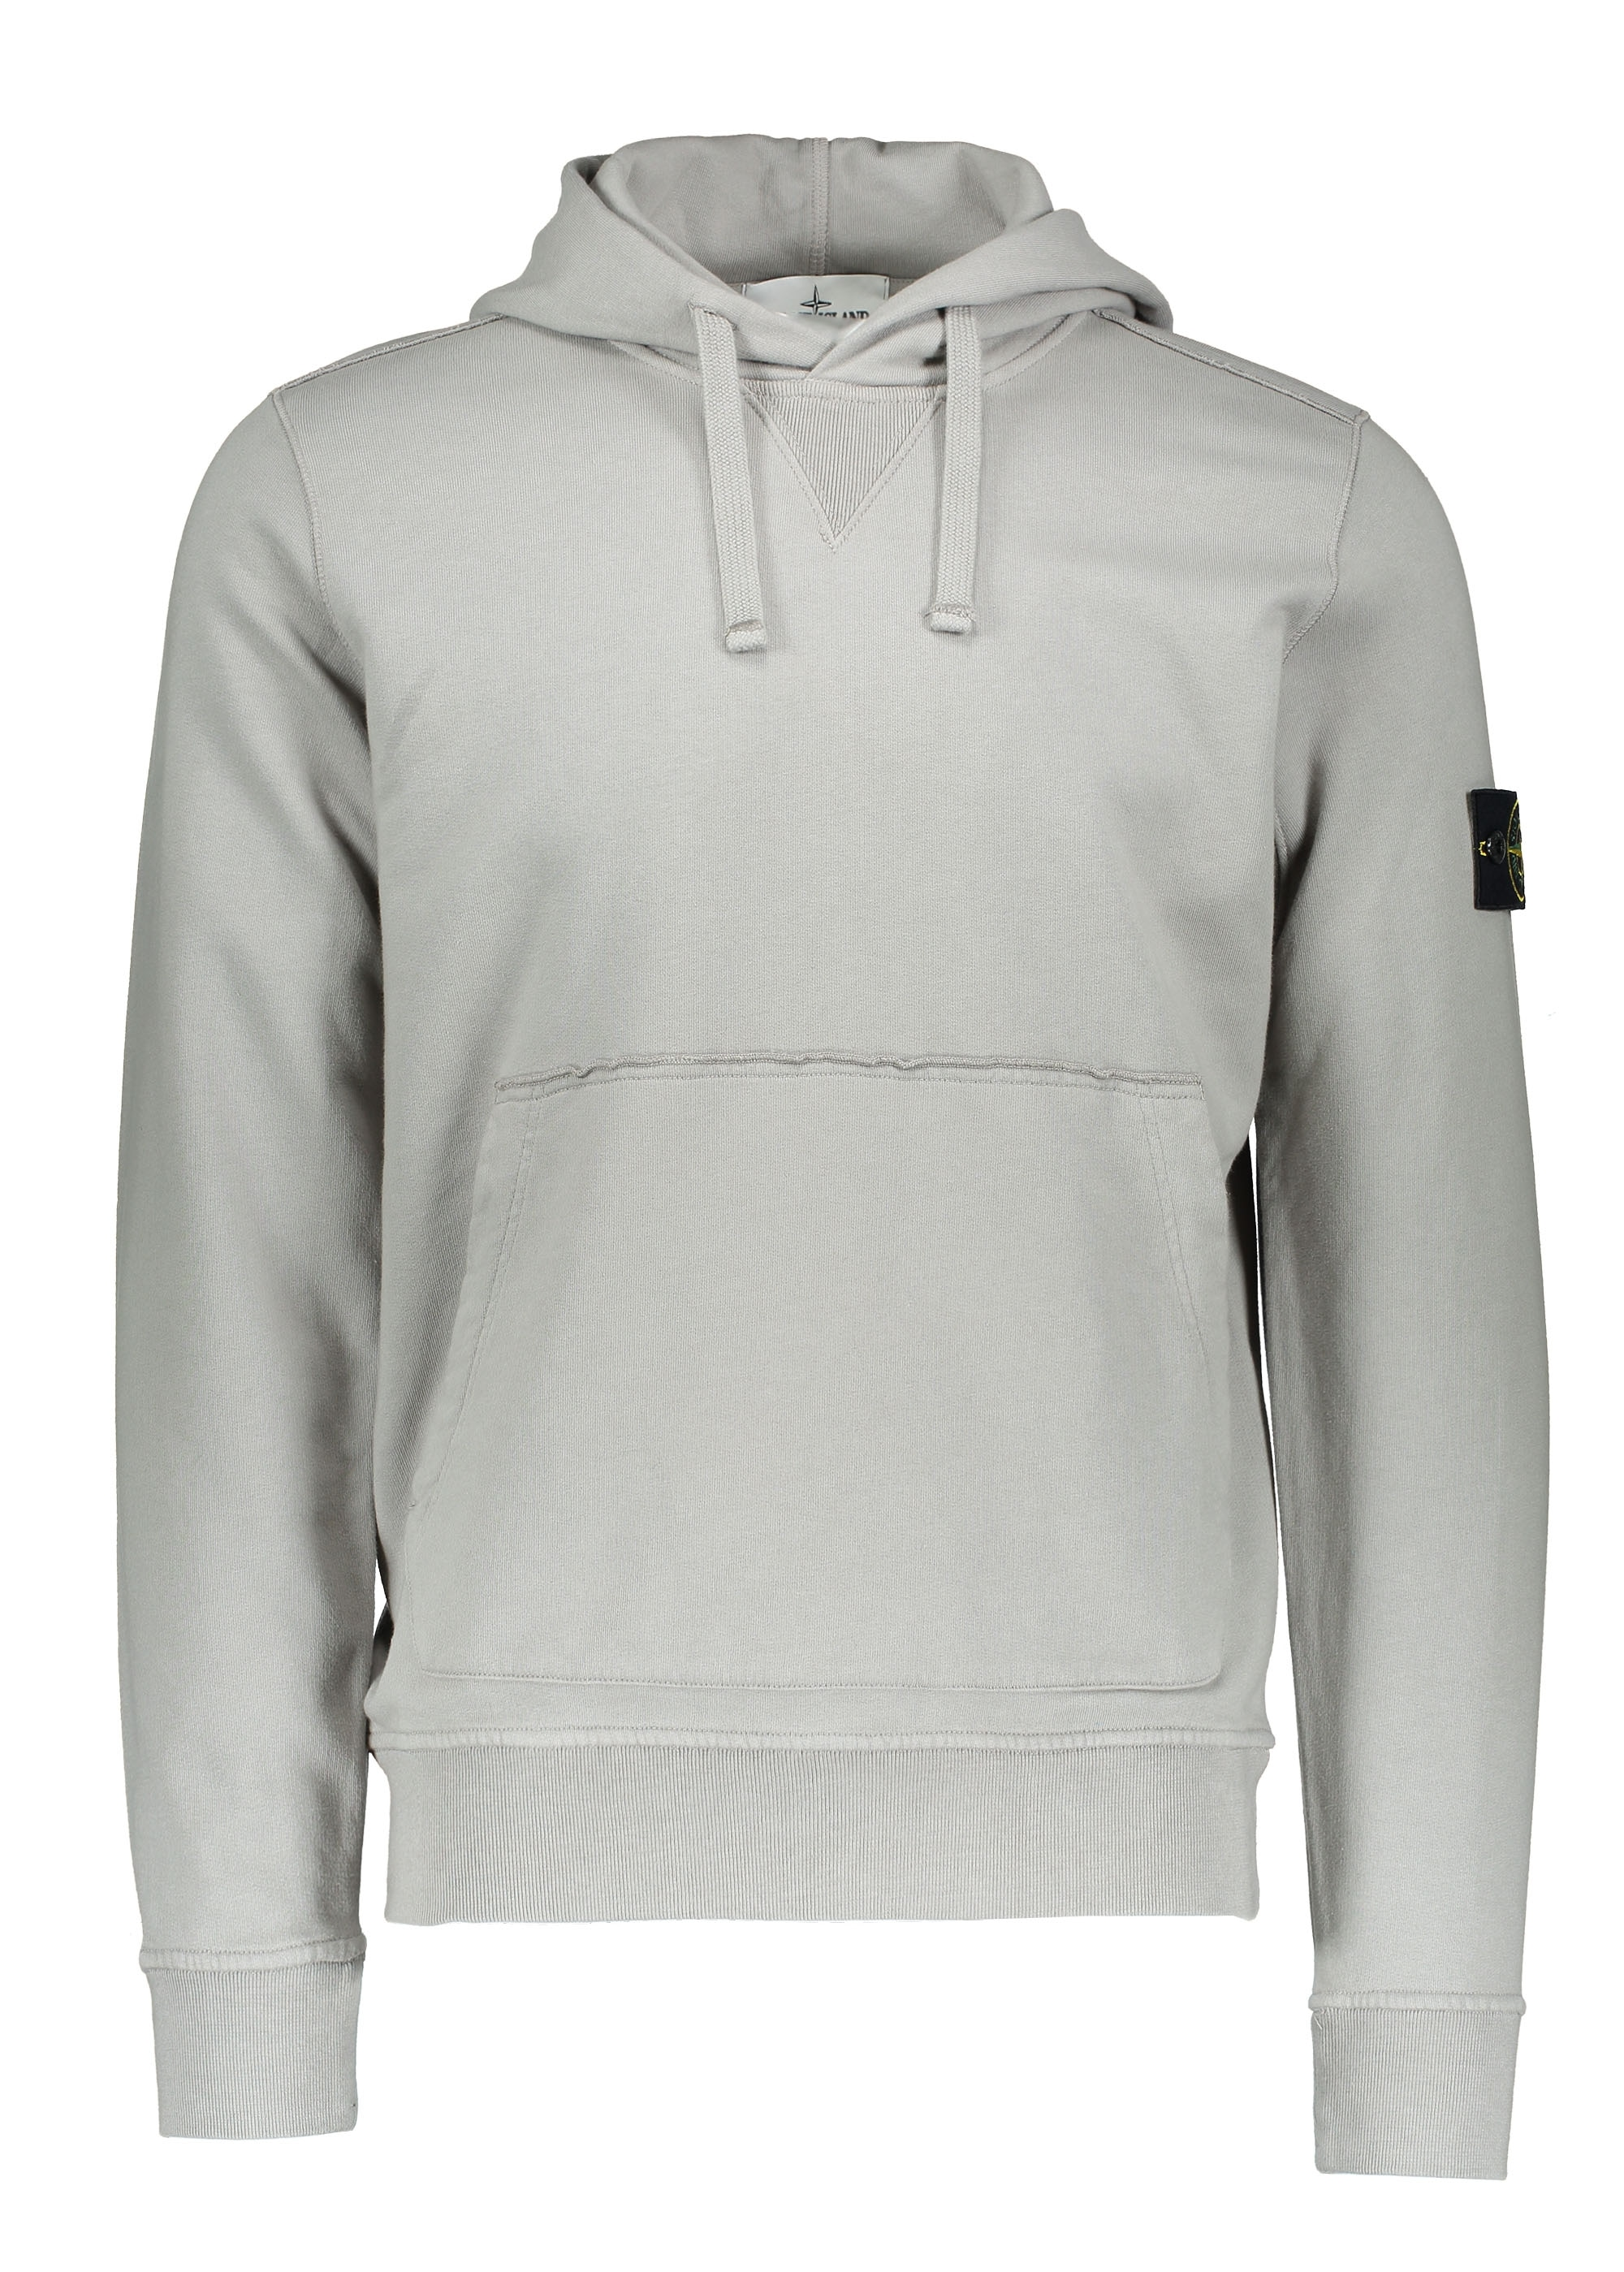 9c87bd402ca Stone Island Hooded Sweat - Dove Grey - Hoodies from Triads UK